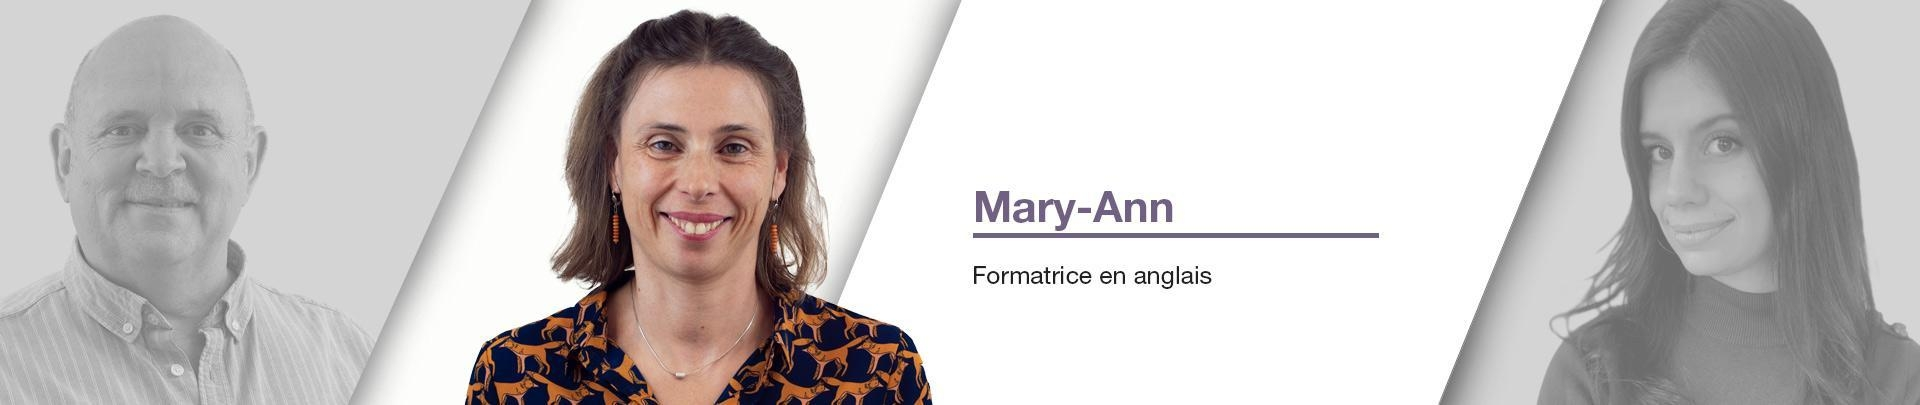 Mary-Anne - Formatrice en anglais